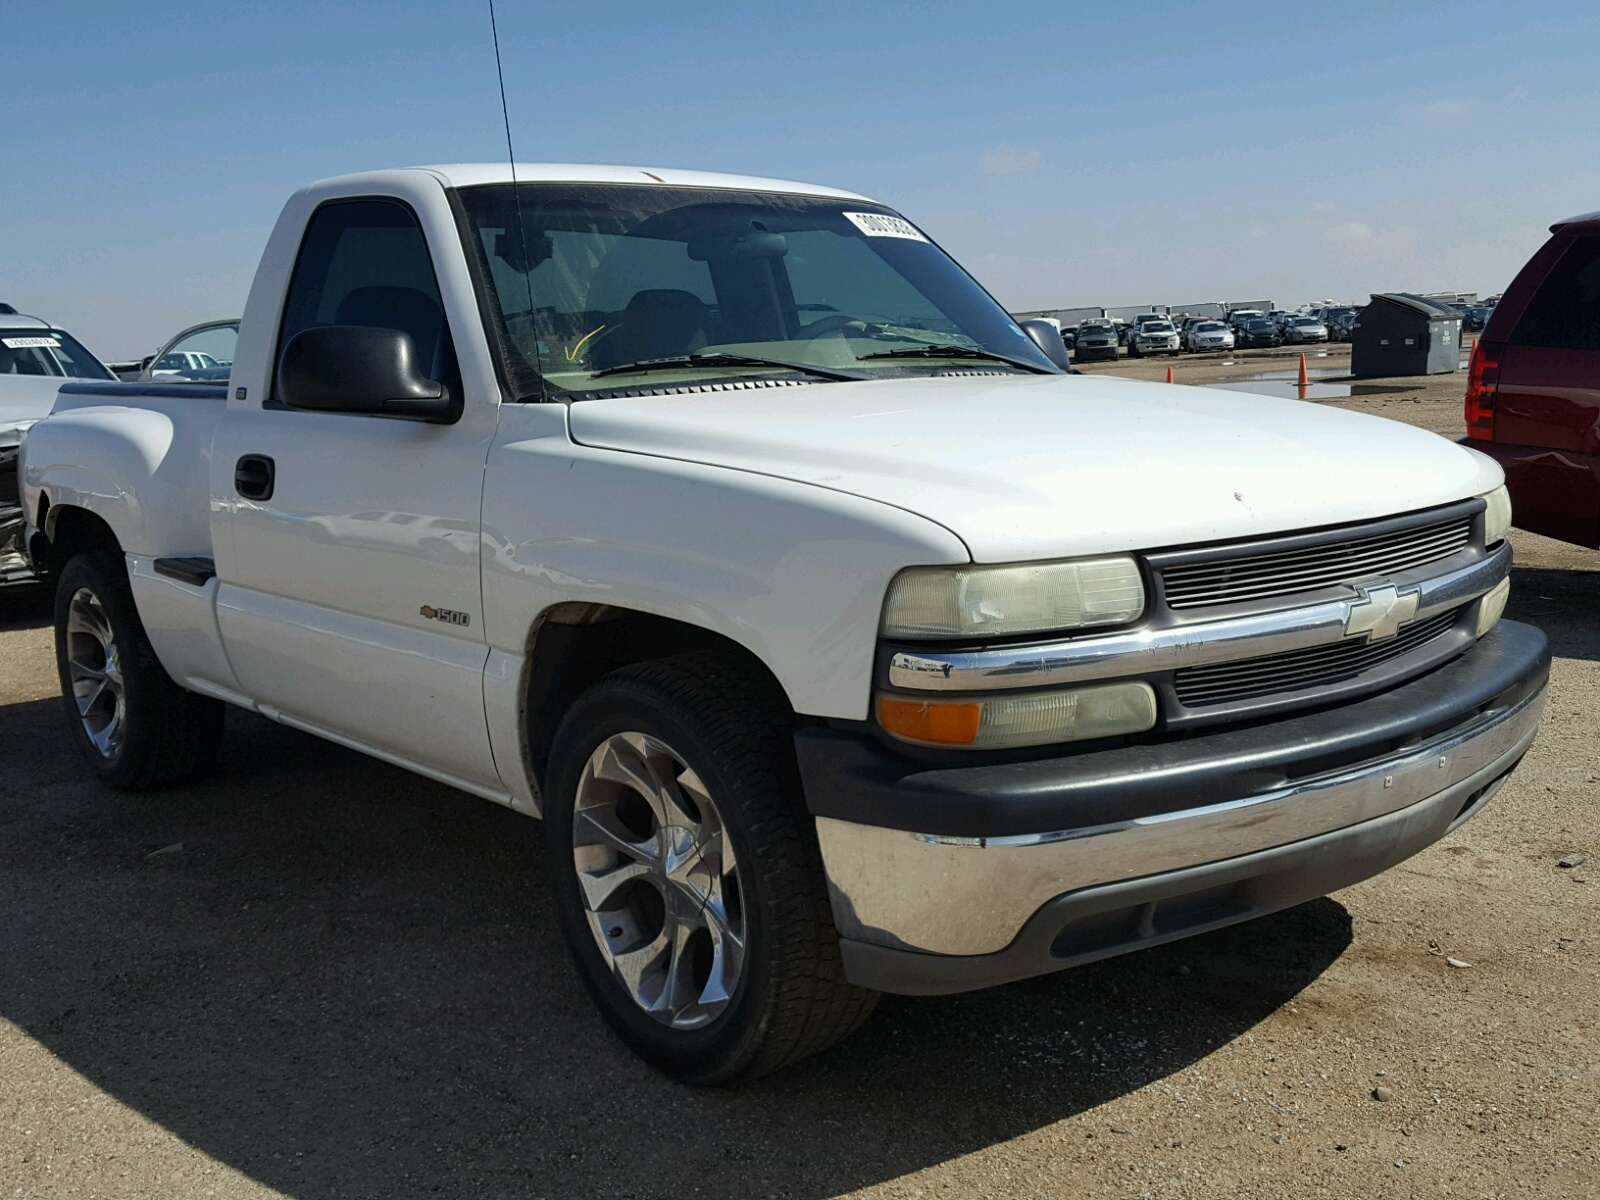 tx copart sale auto online auctions vehicle on en gray salvage title chevrolet amarillo silverado left in view lot carfinder